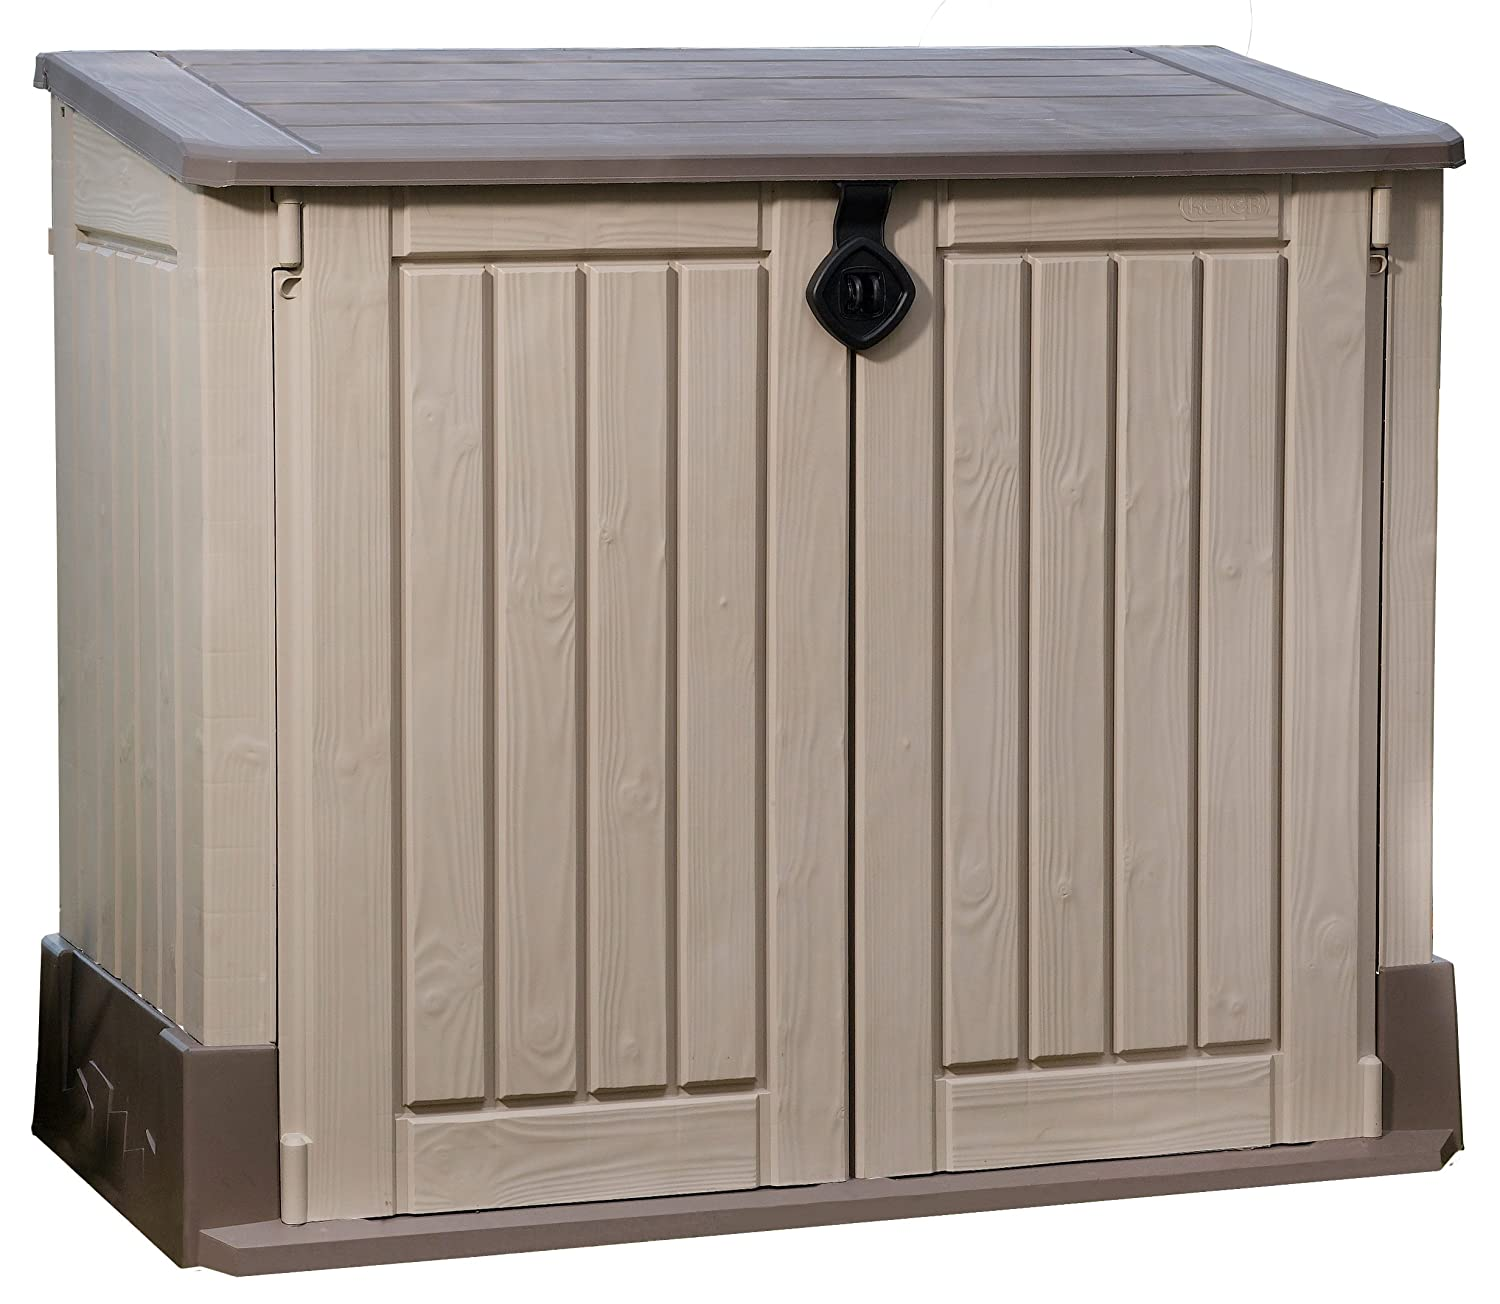 Project diy plans keter store it out storage shed x large for Small garden storage sheds